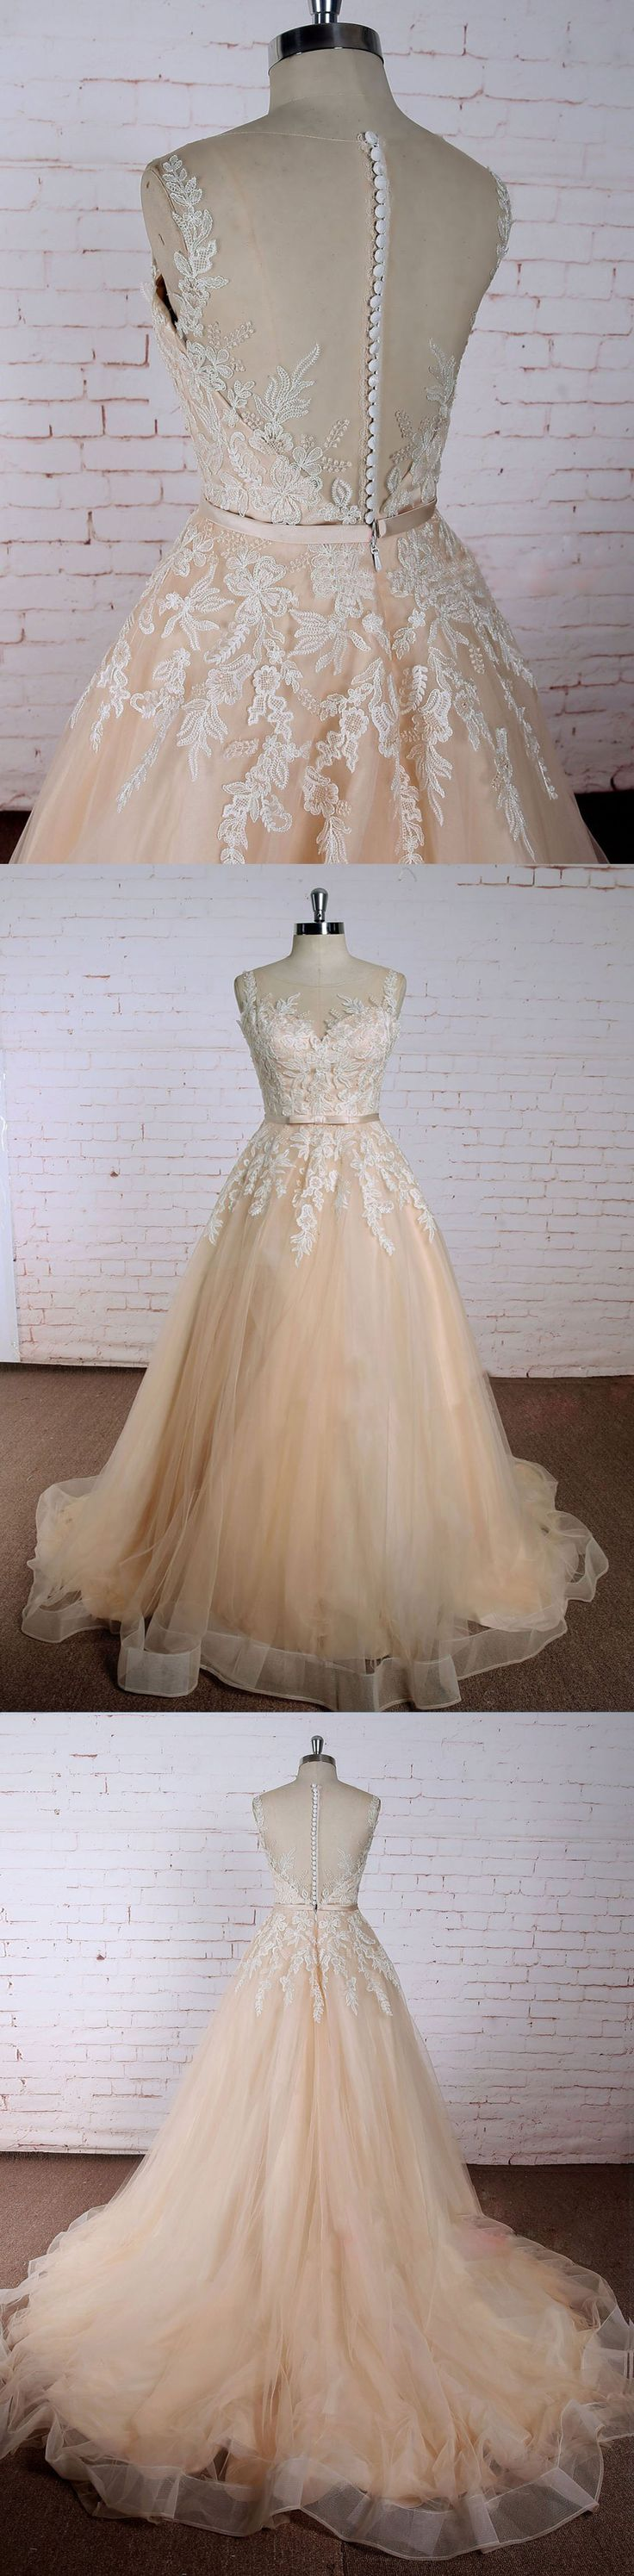 Sweet 16 Dresses | Beautiful lace appliqued champa… -  Prom shopping is alive and well on Pinterest. Compare prices for this @ Wrhel.com before you commit to buy. #Prom